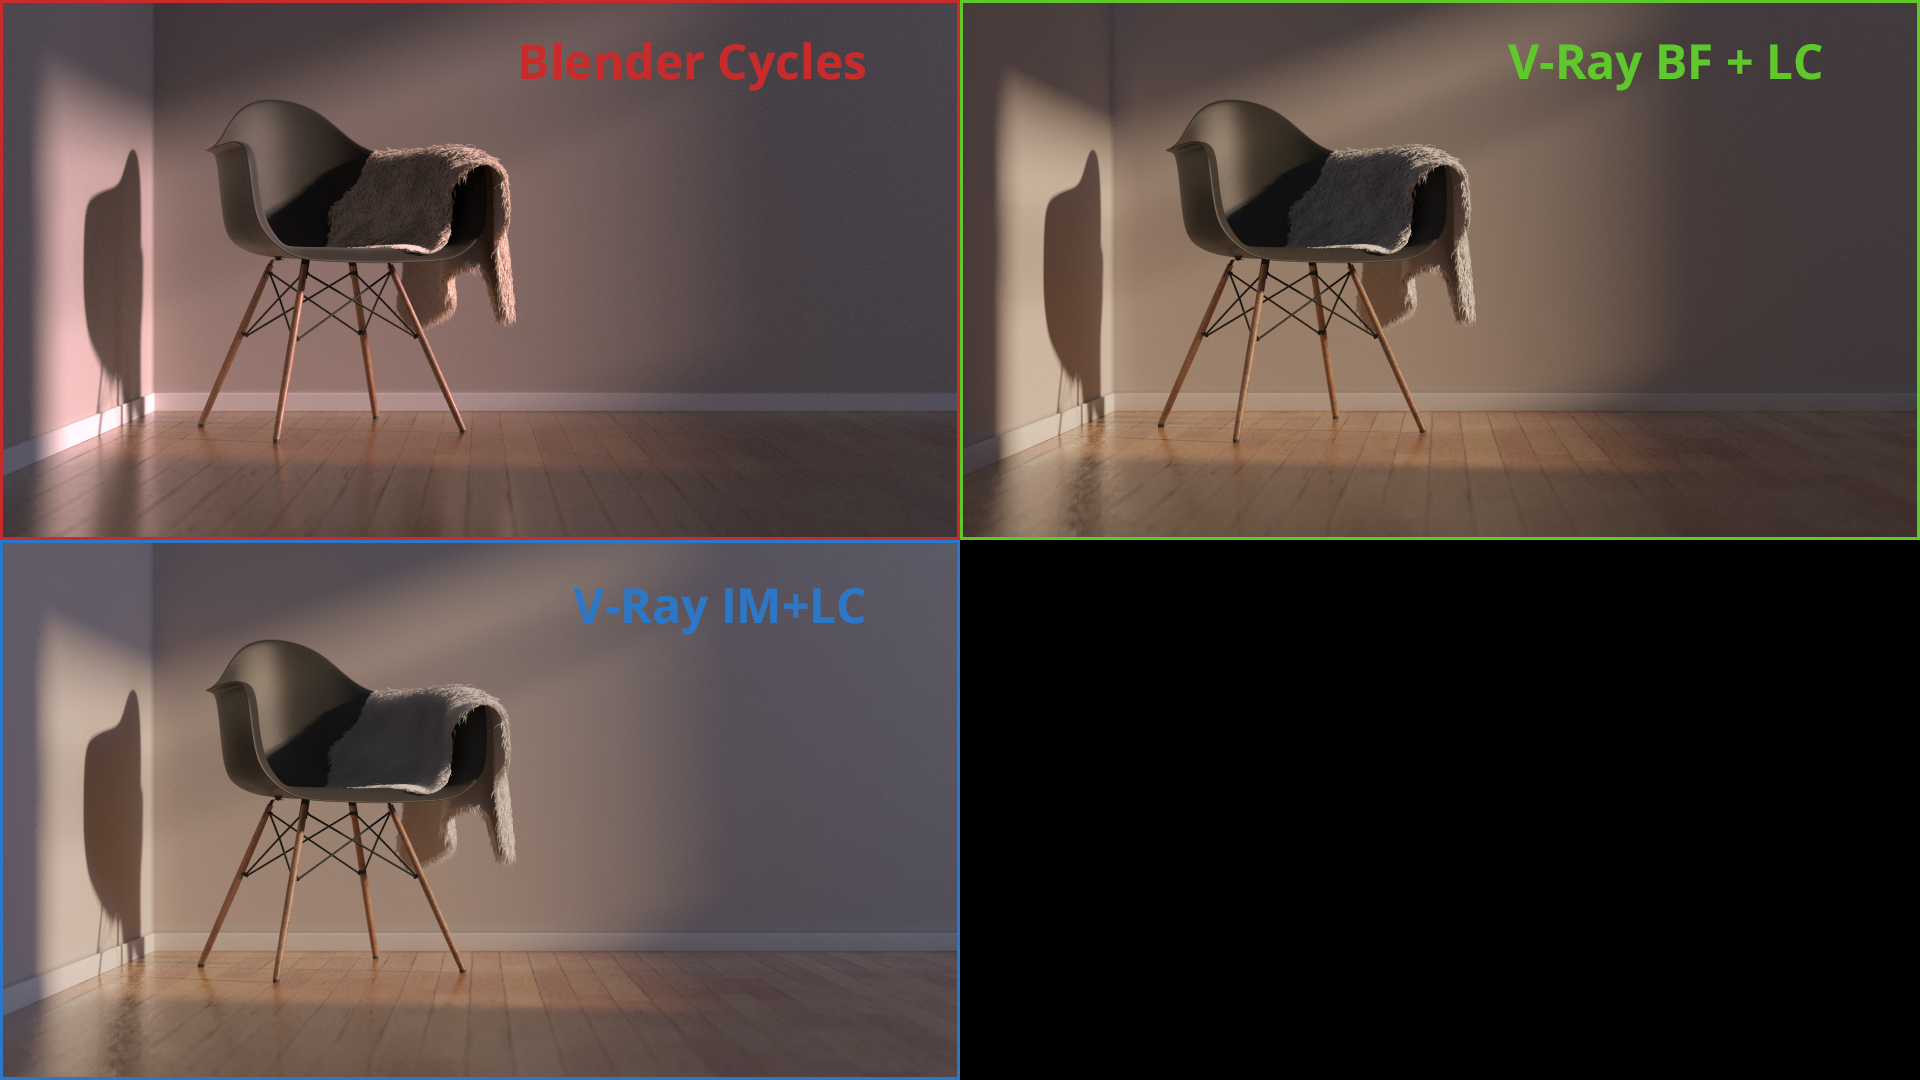 Blender Cycles vs V-Ray - Which one is better?